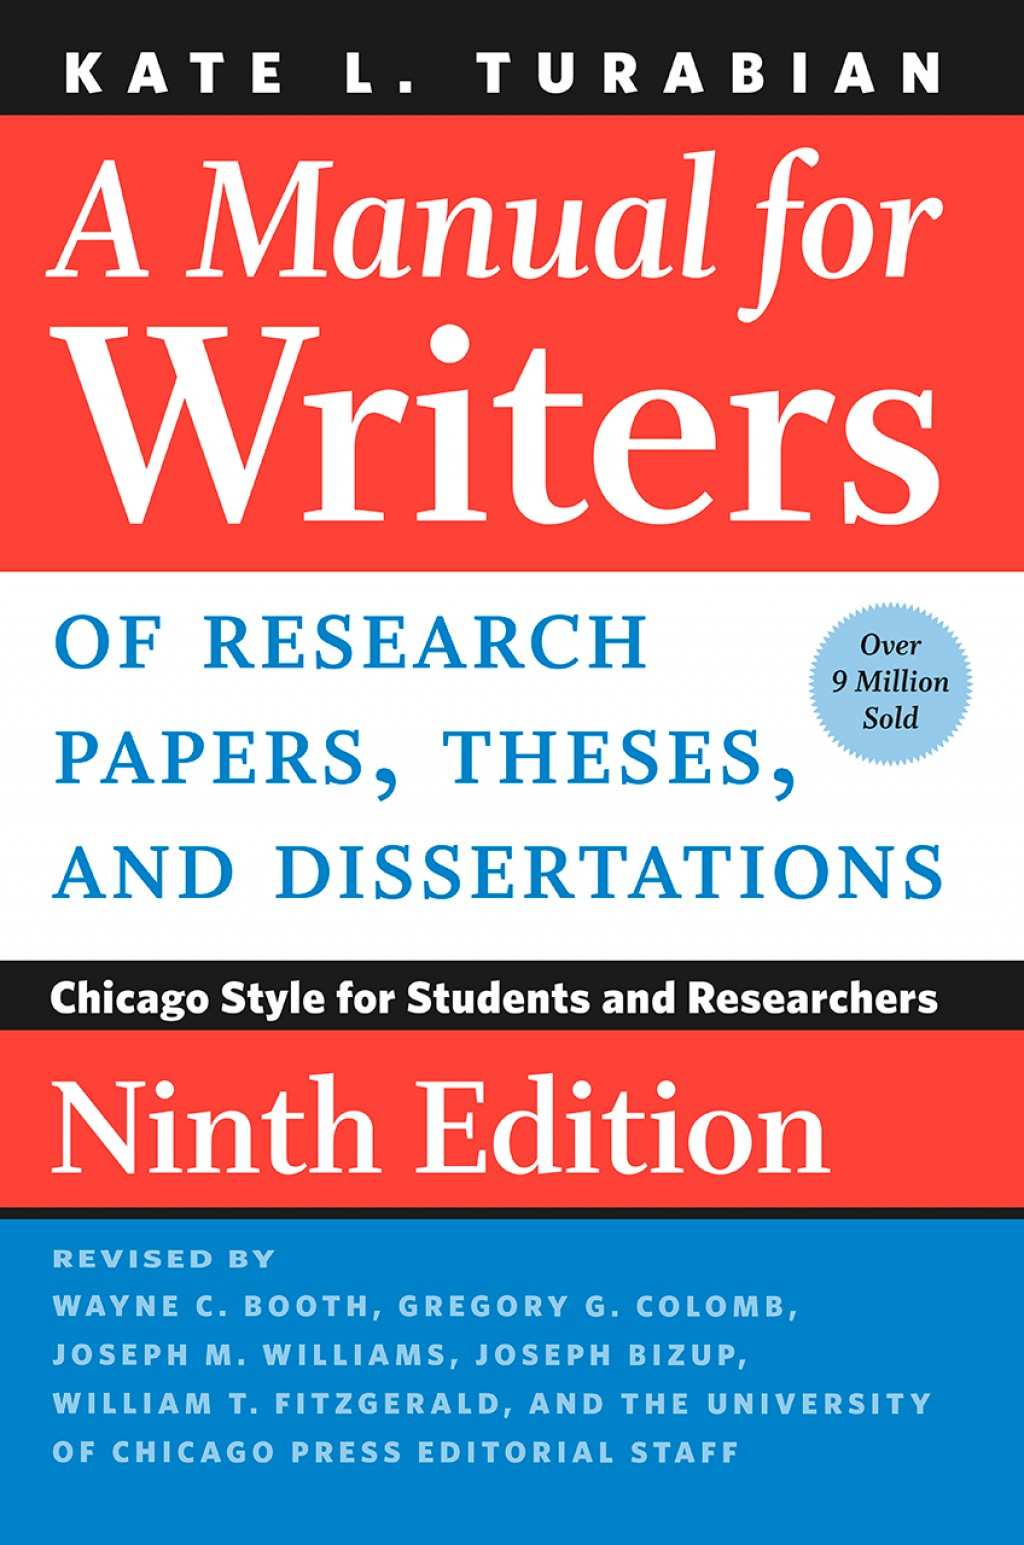 001 Research Paper Manual For Writers Of Papers Theses And Dissertations 7th Sensational A Edition Large